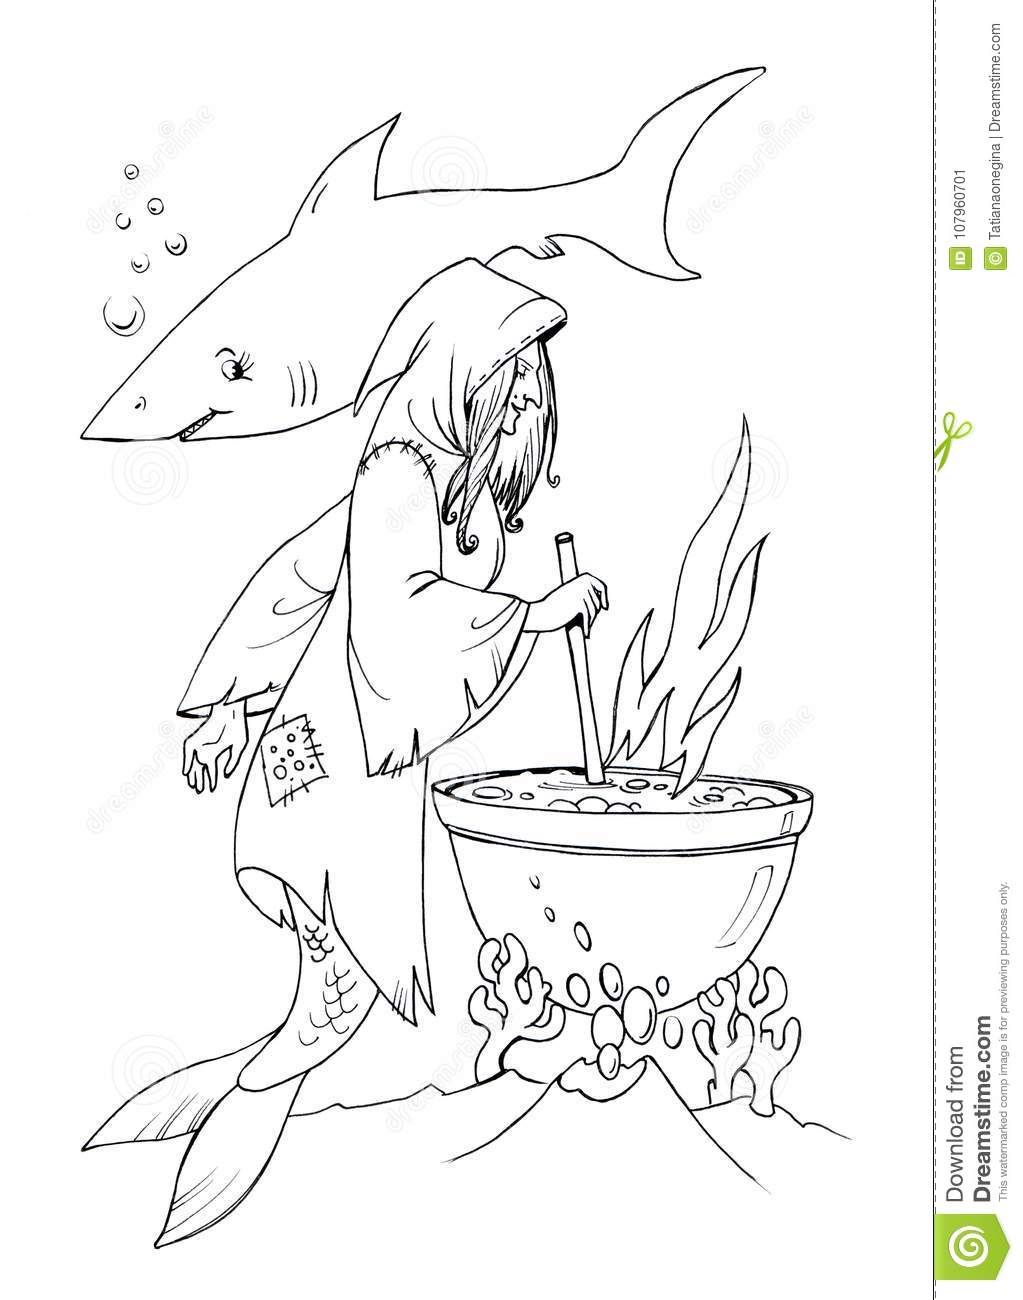 Fairytale Sea Mermaid Wich Coloring Page Stock Illustration ...